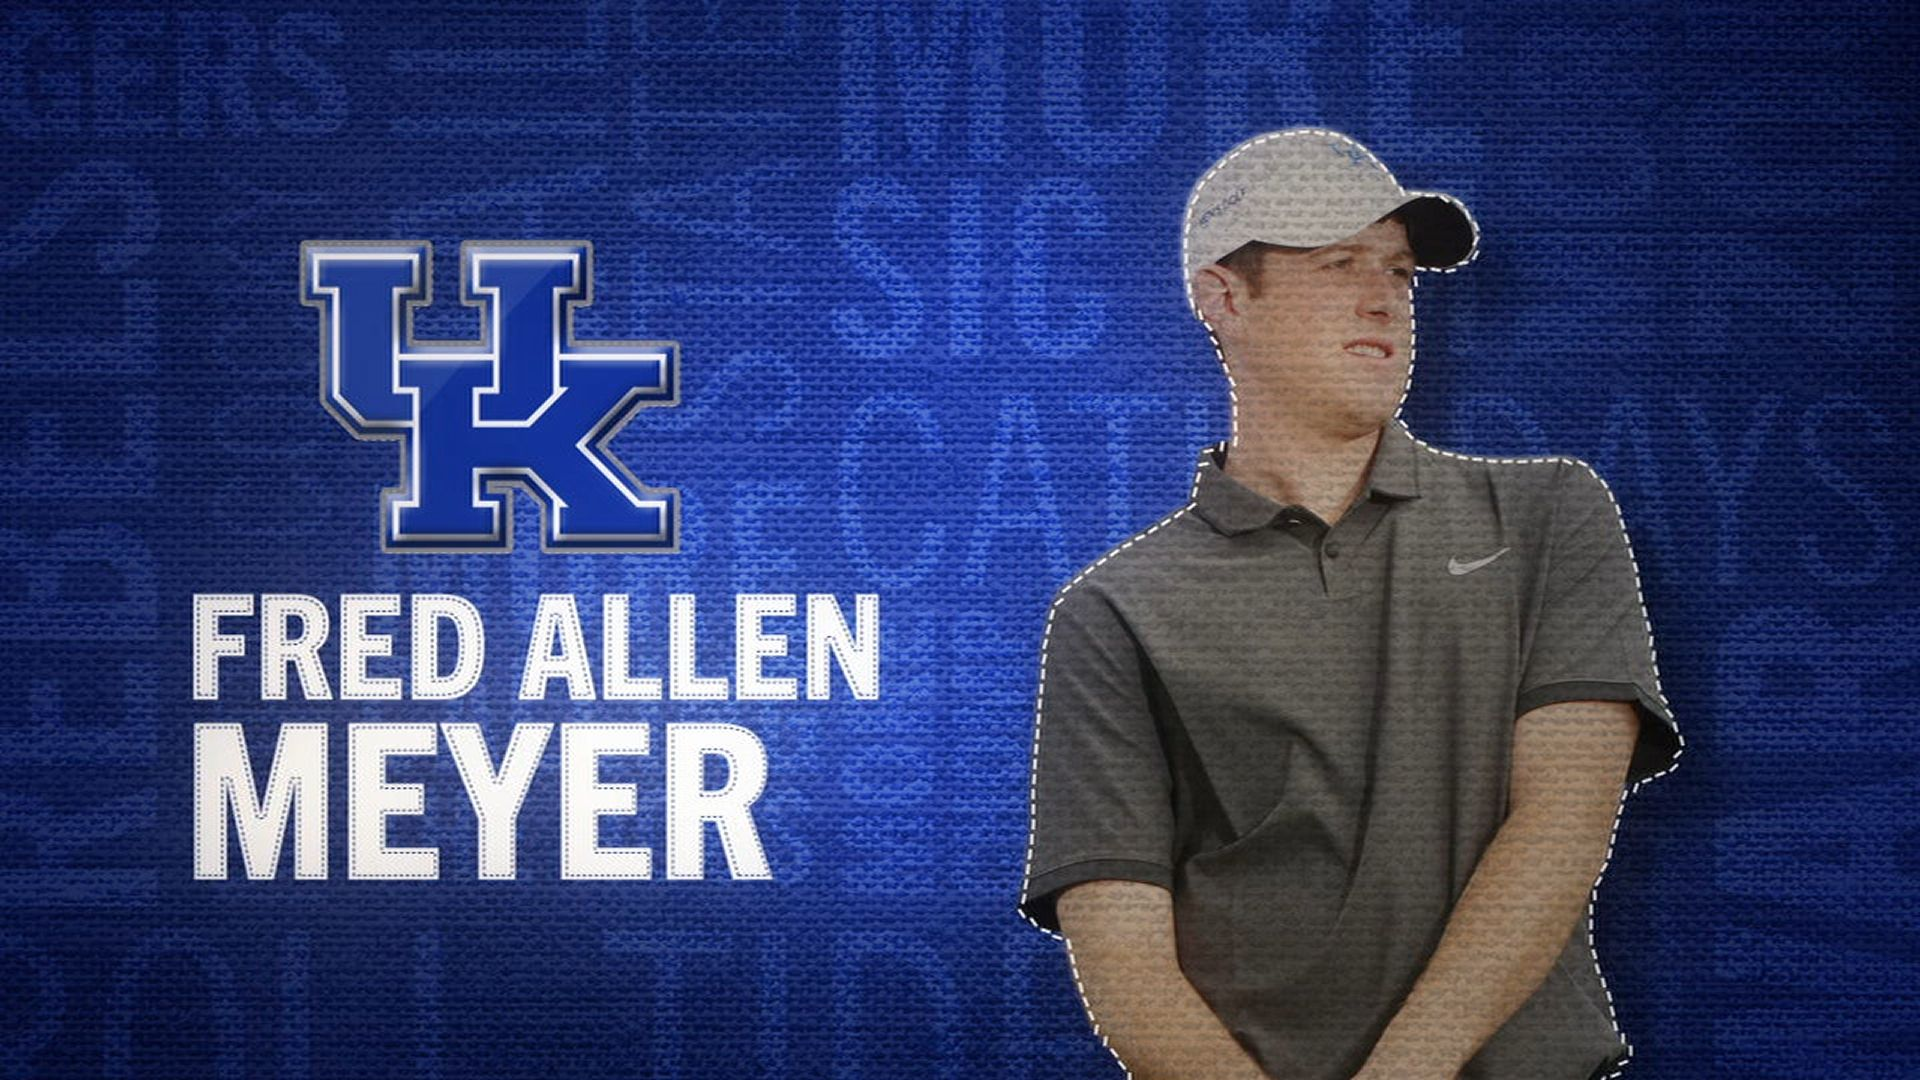 I am the SEC: Kentucky's Fred Allen Meyer